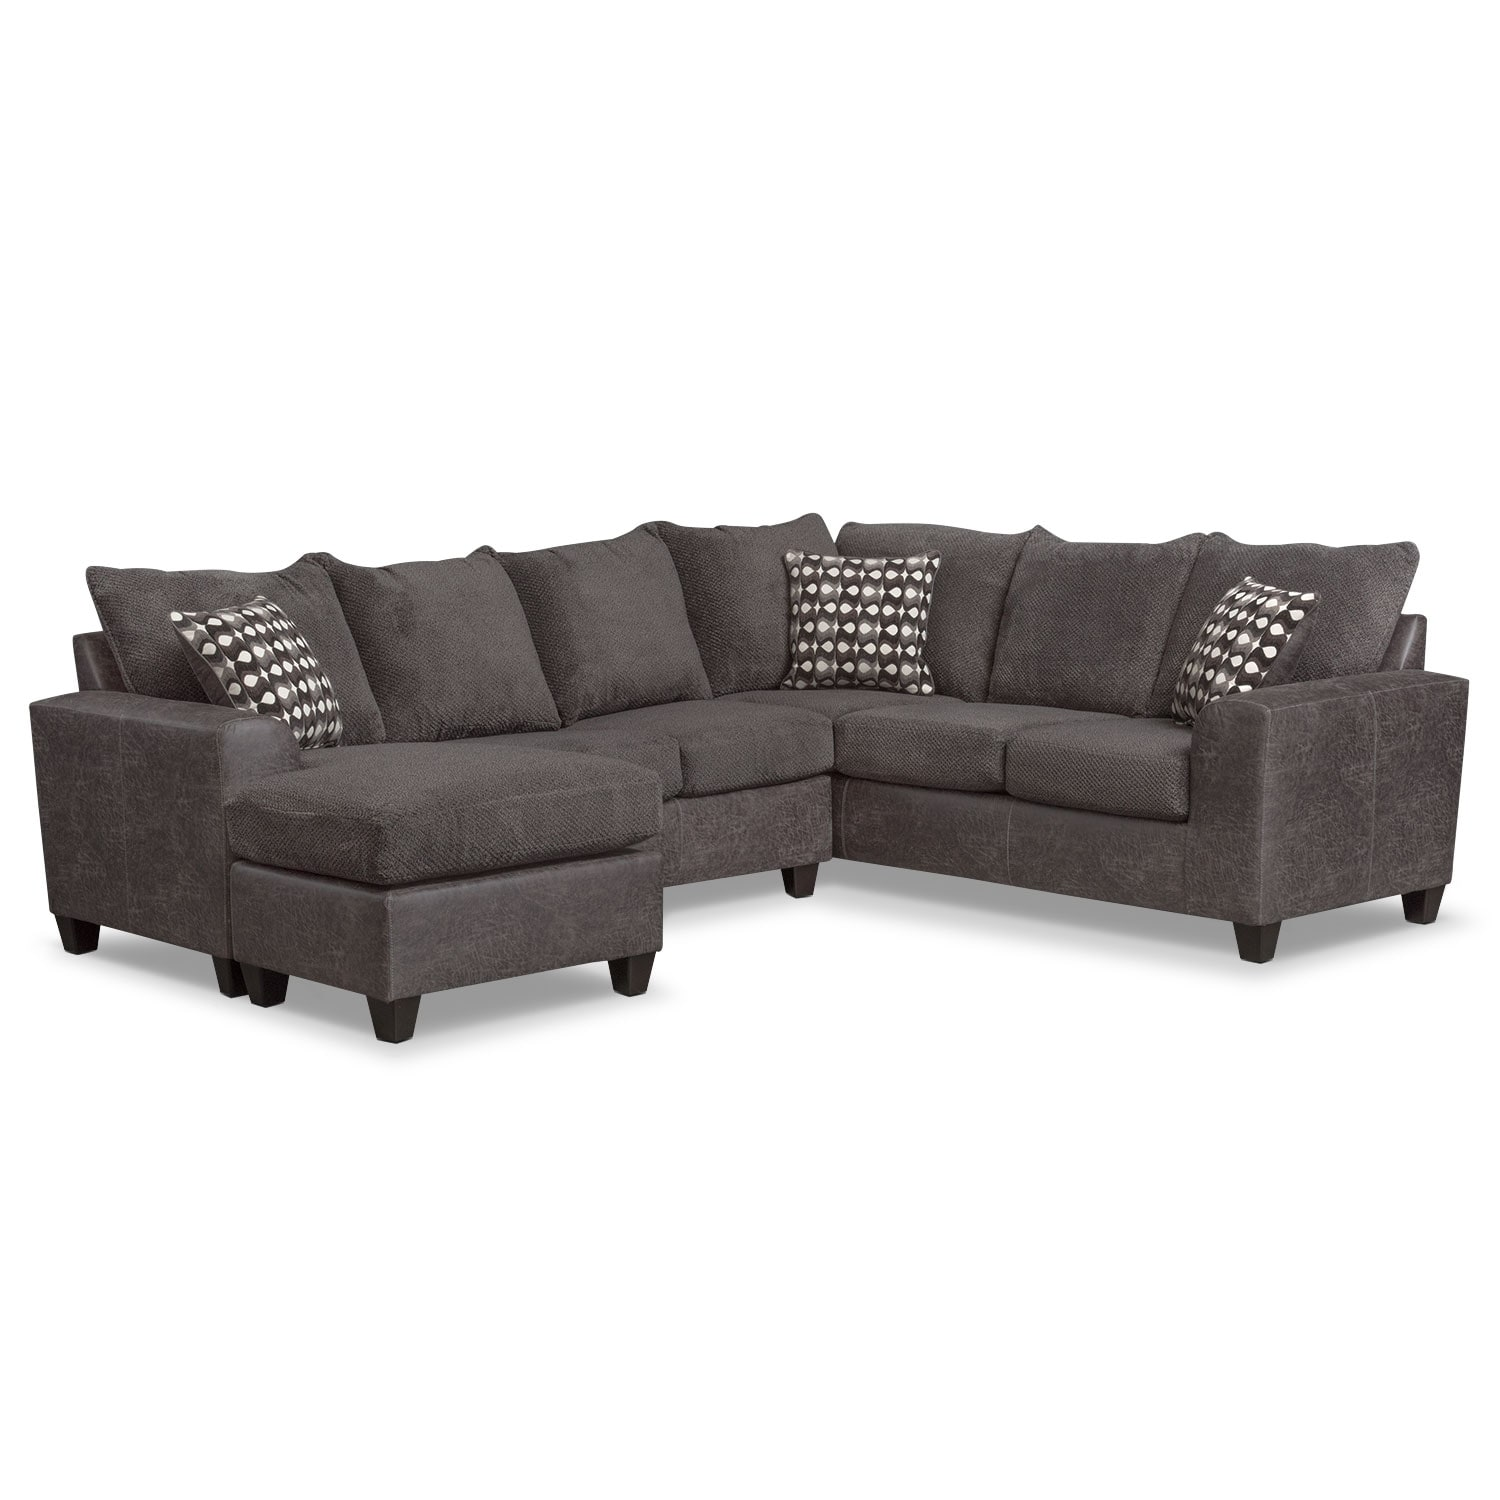 Brando 3 Piece Sectional With Modular Chaise American Signature Furniture